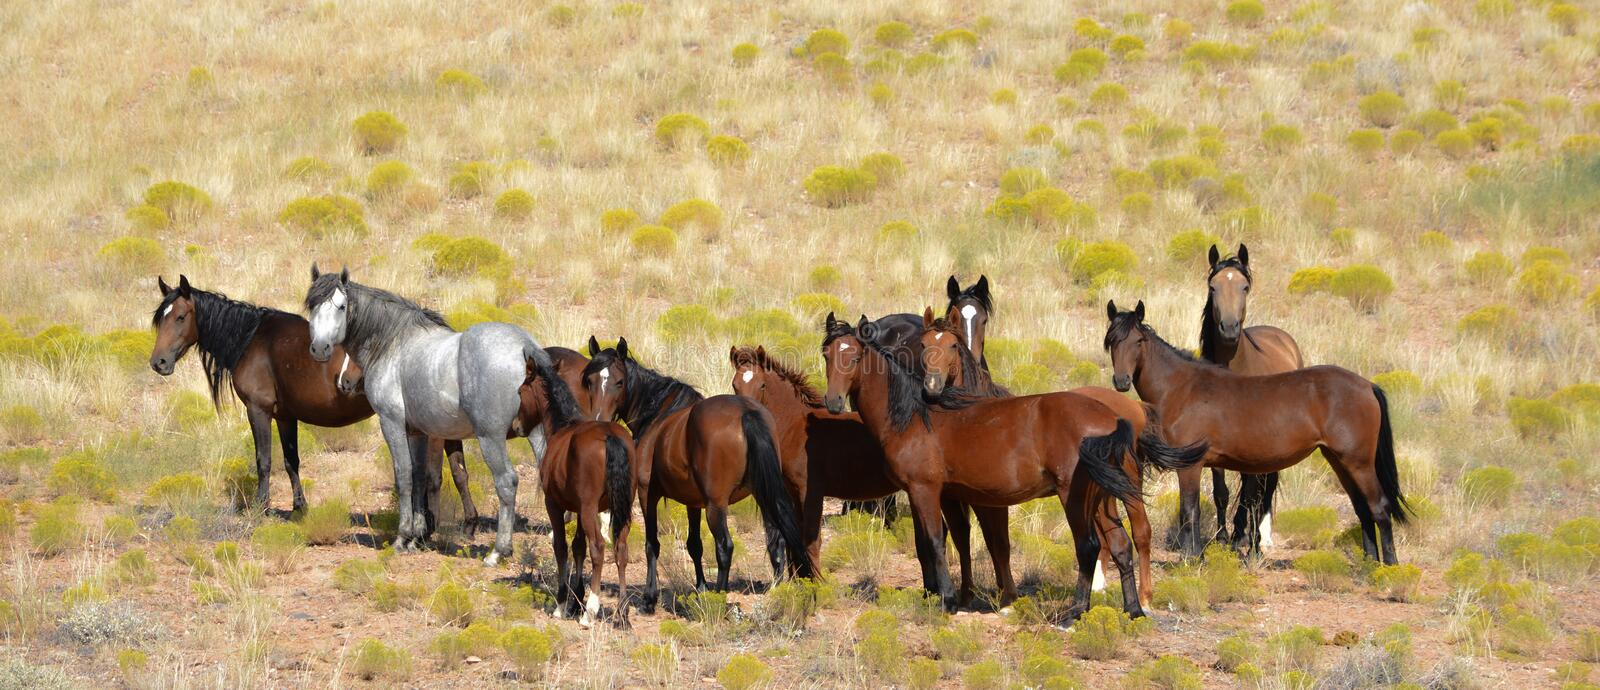 Wild Mustangs on Indian Reservation. American Indian Reservation of the Ute Indian with herd of wild mustangs standing in a field looking at the camera royalty free stock photography